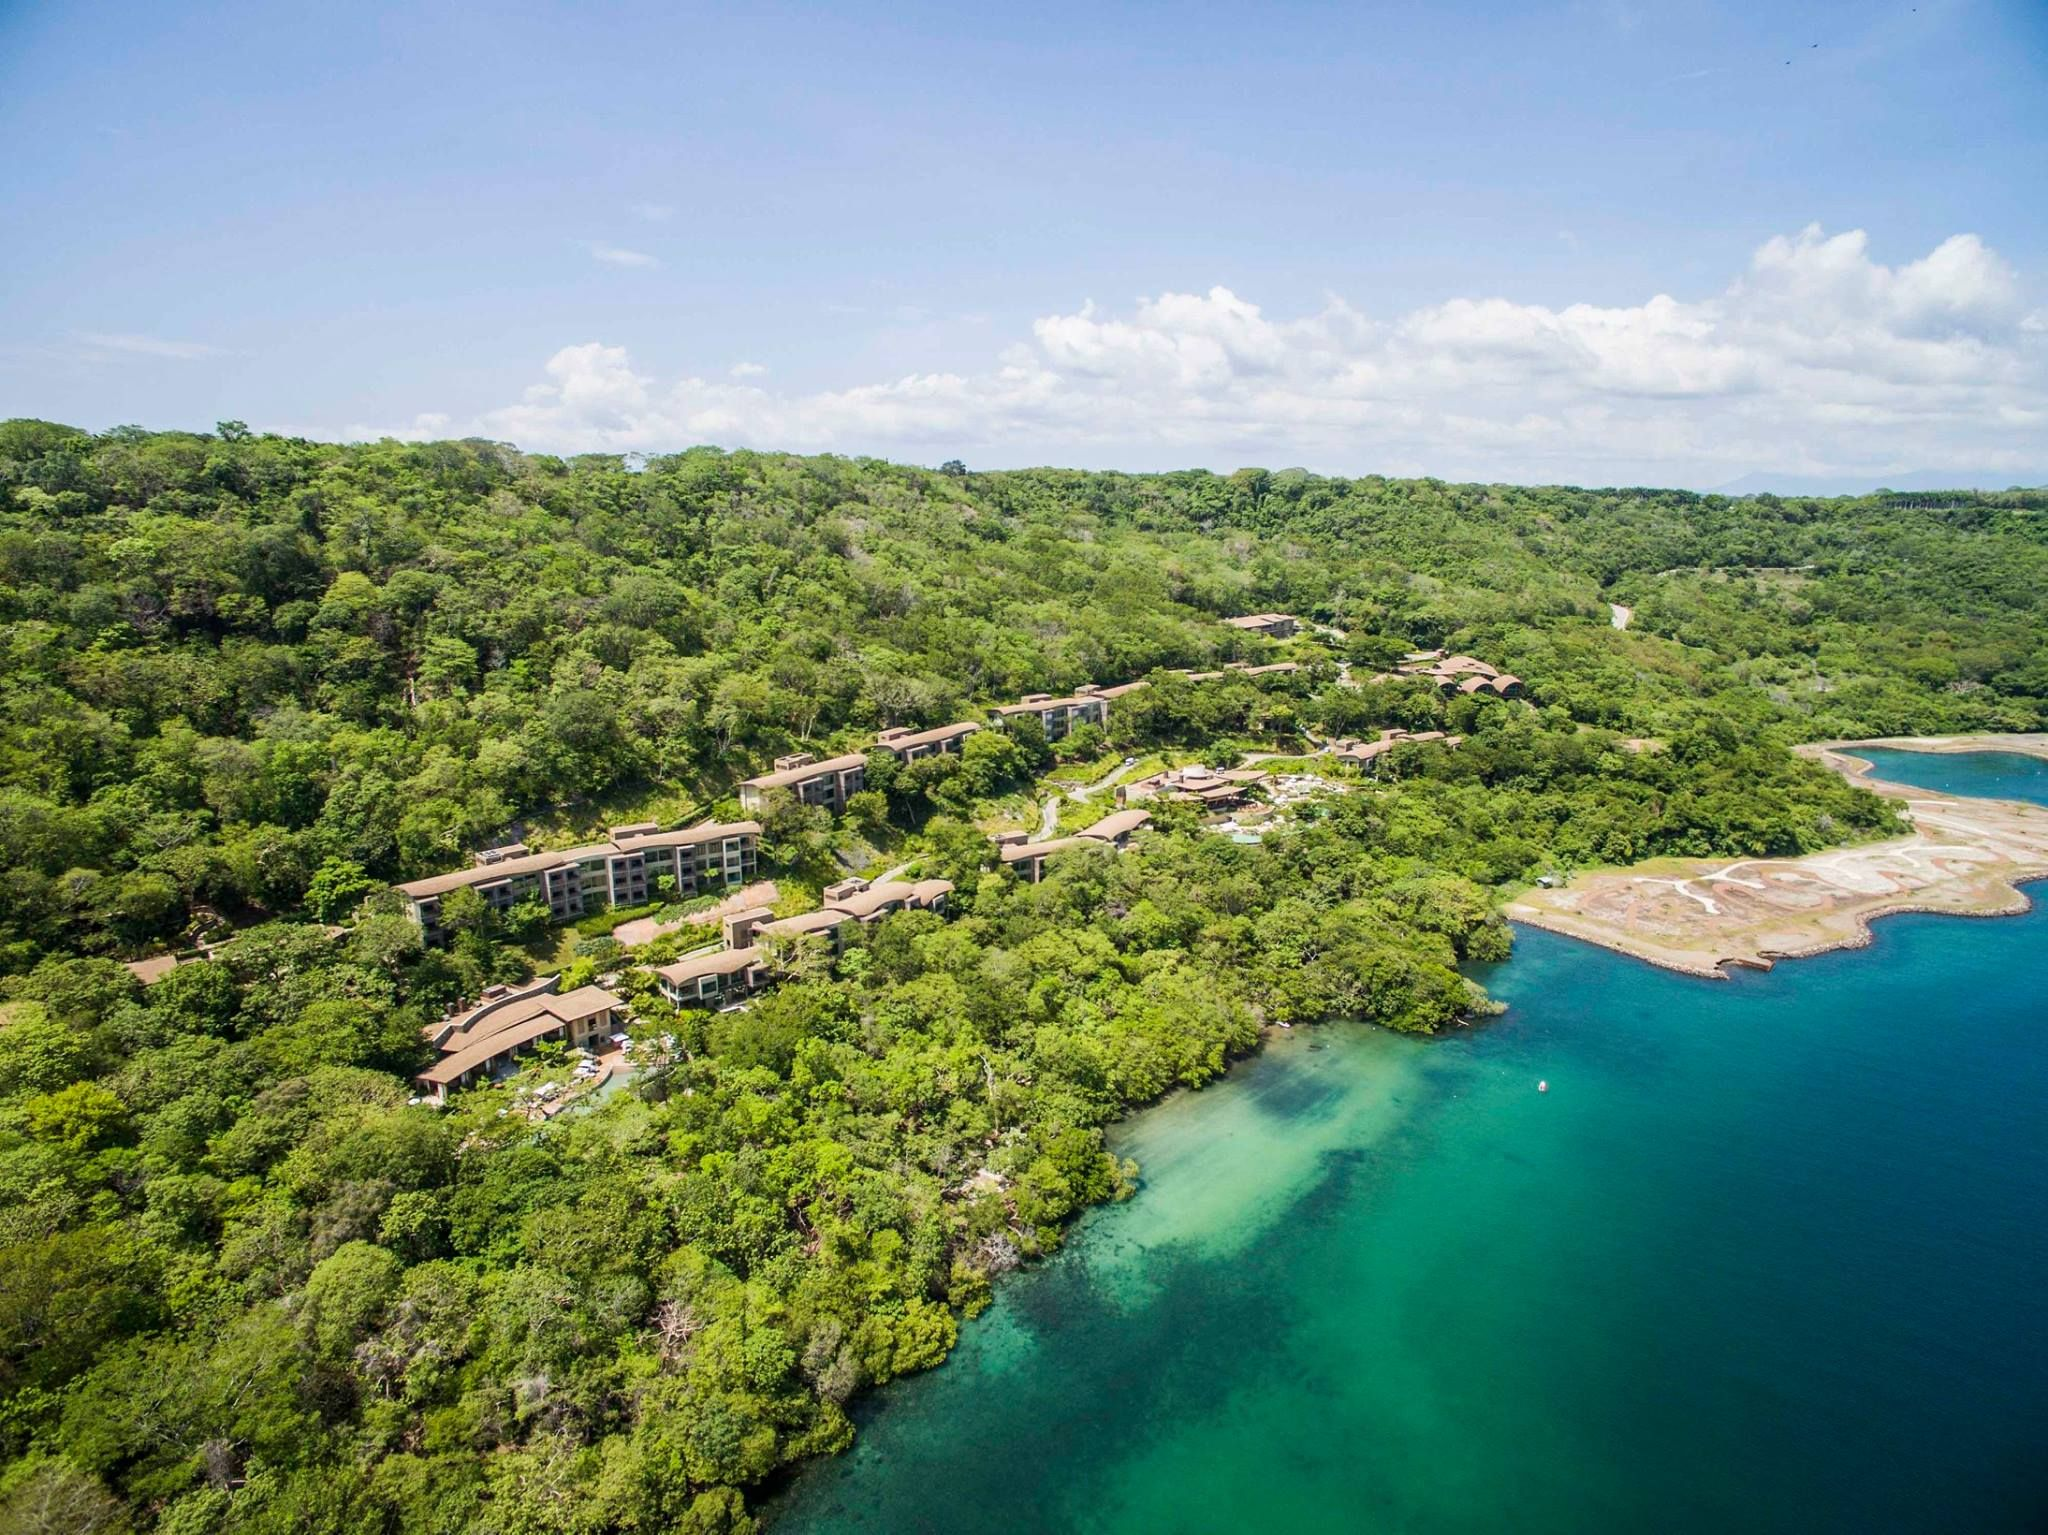 Costa rica ultra luxury central america vacation for Luxury vacation costa rica